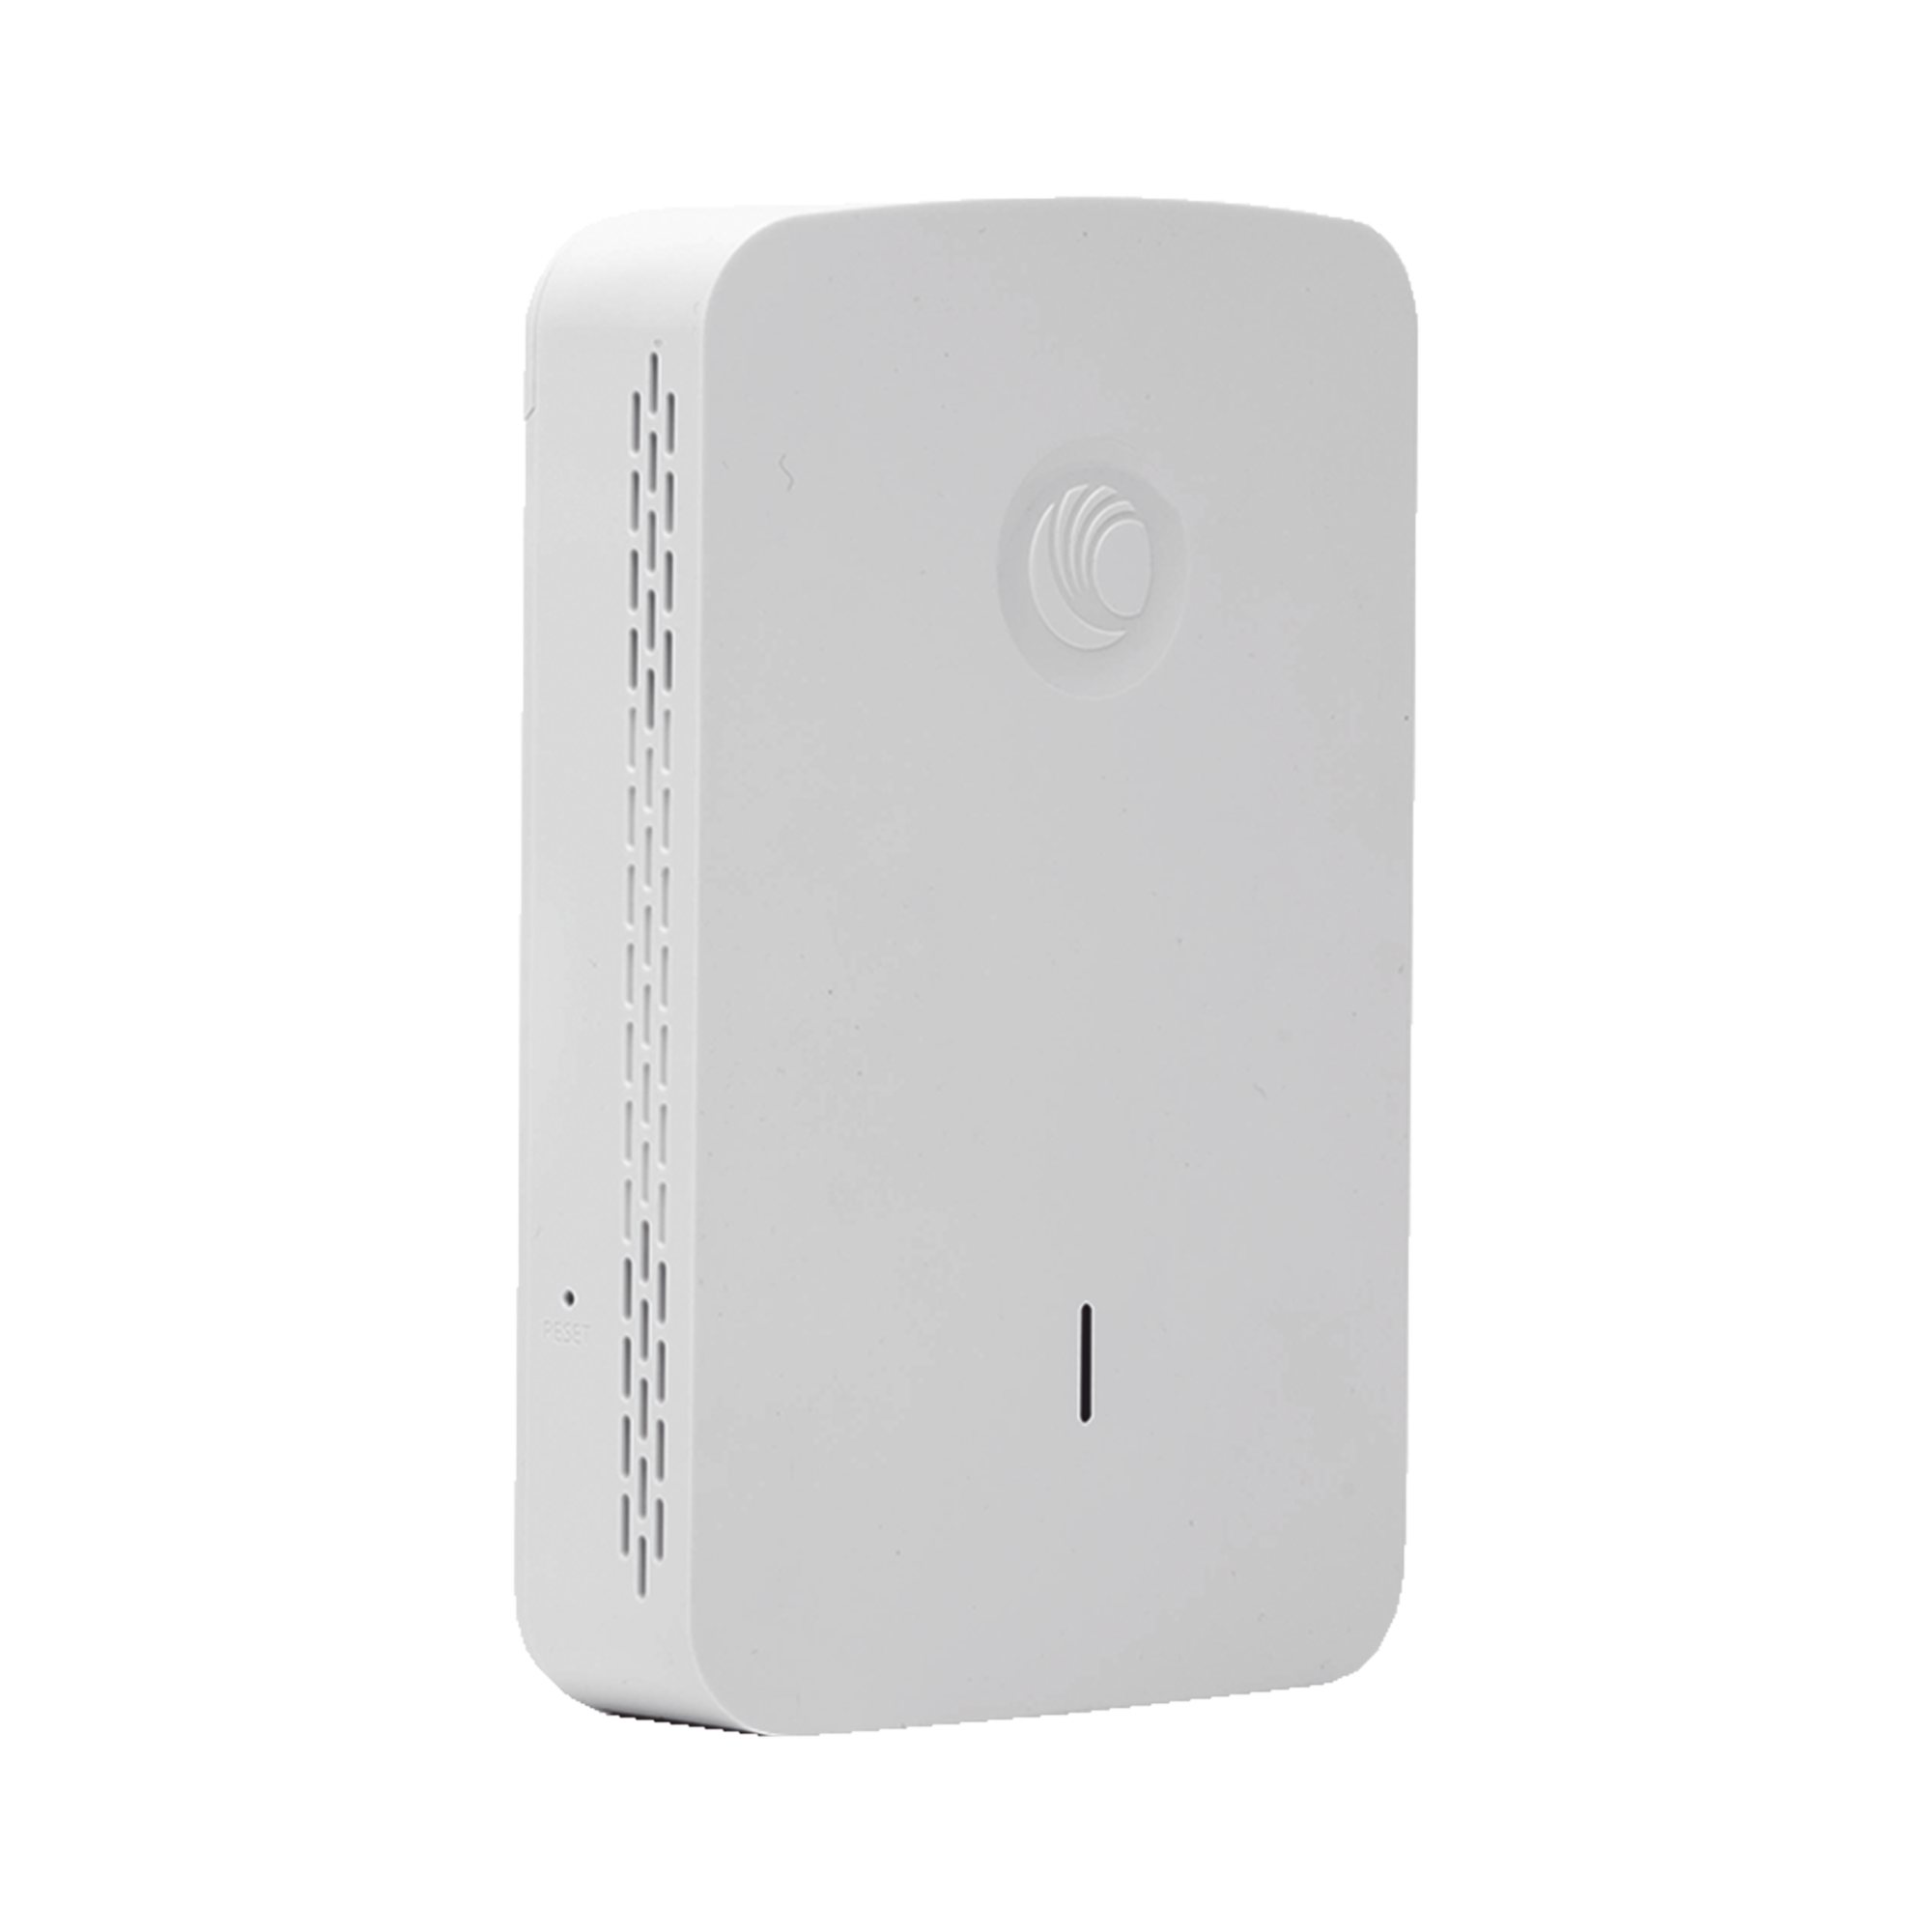 Access Point WiFi cnPilot e425H Indoor Wall Plate, doble banda, Wave 2, antena beamforming, 2 puertos de salida (1x PoE Gigabit y 1x Ethernet Gigabit)